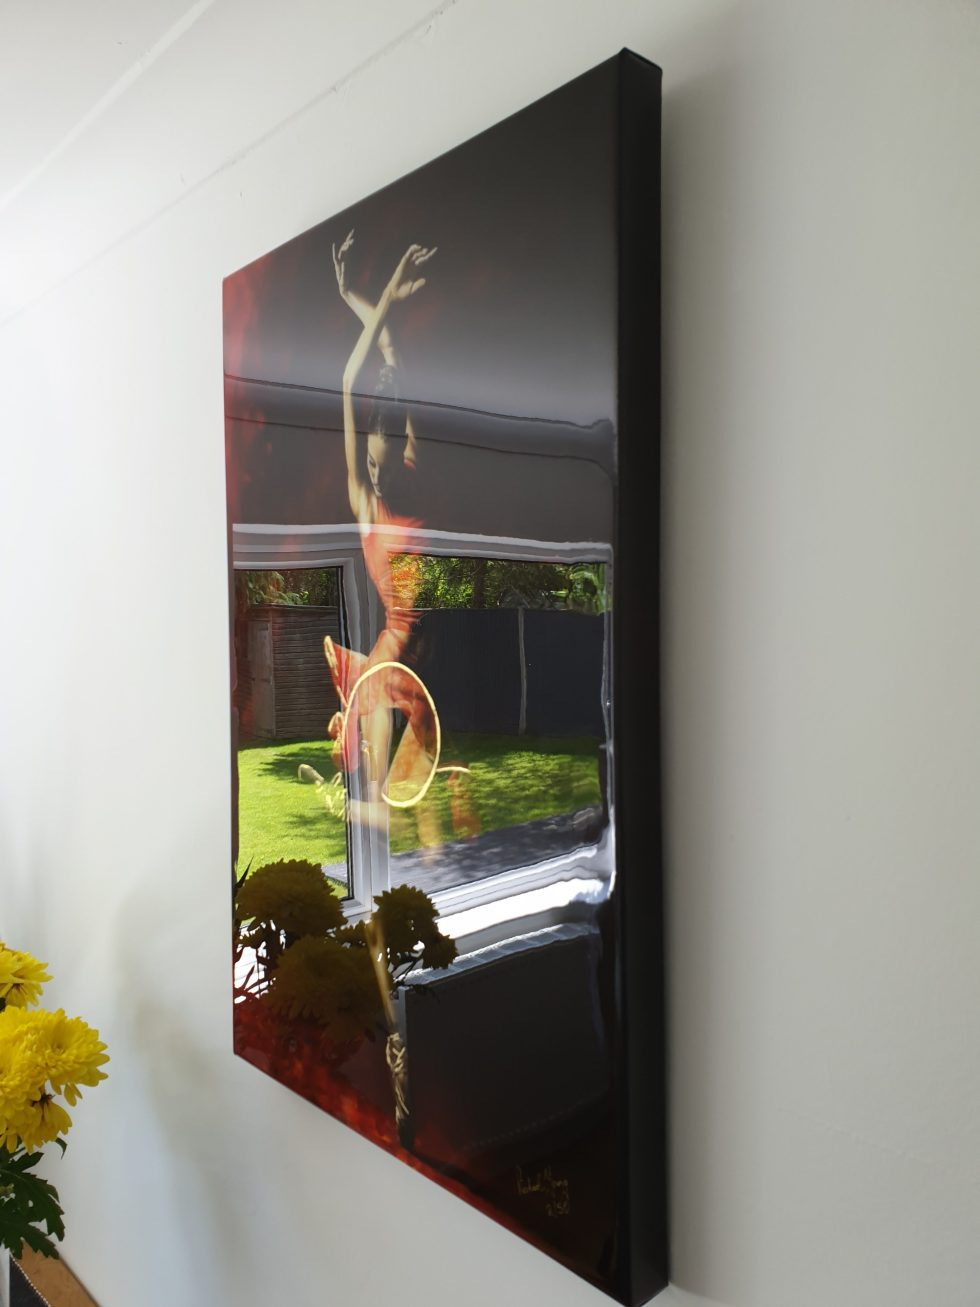 The Passion of Dance - Drew Jacoby - Ltd Edition Hand Embellished Resin Print